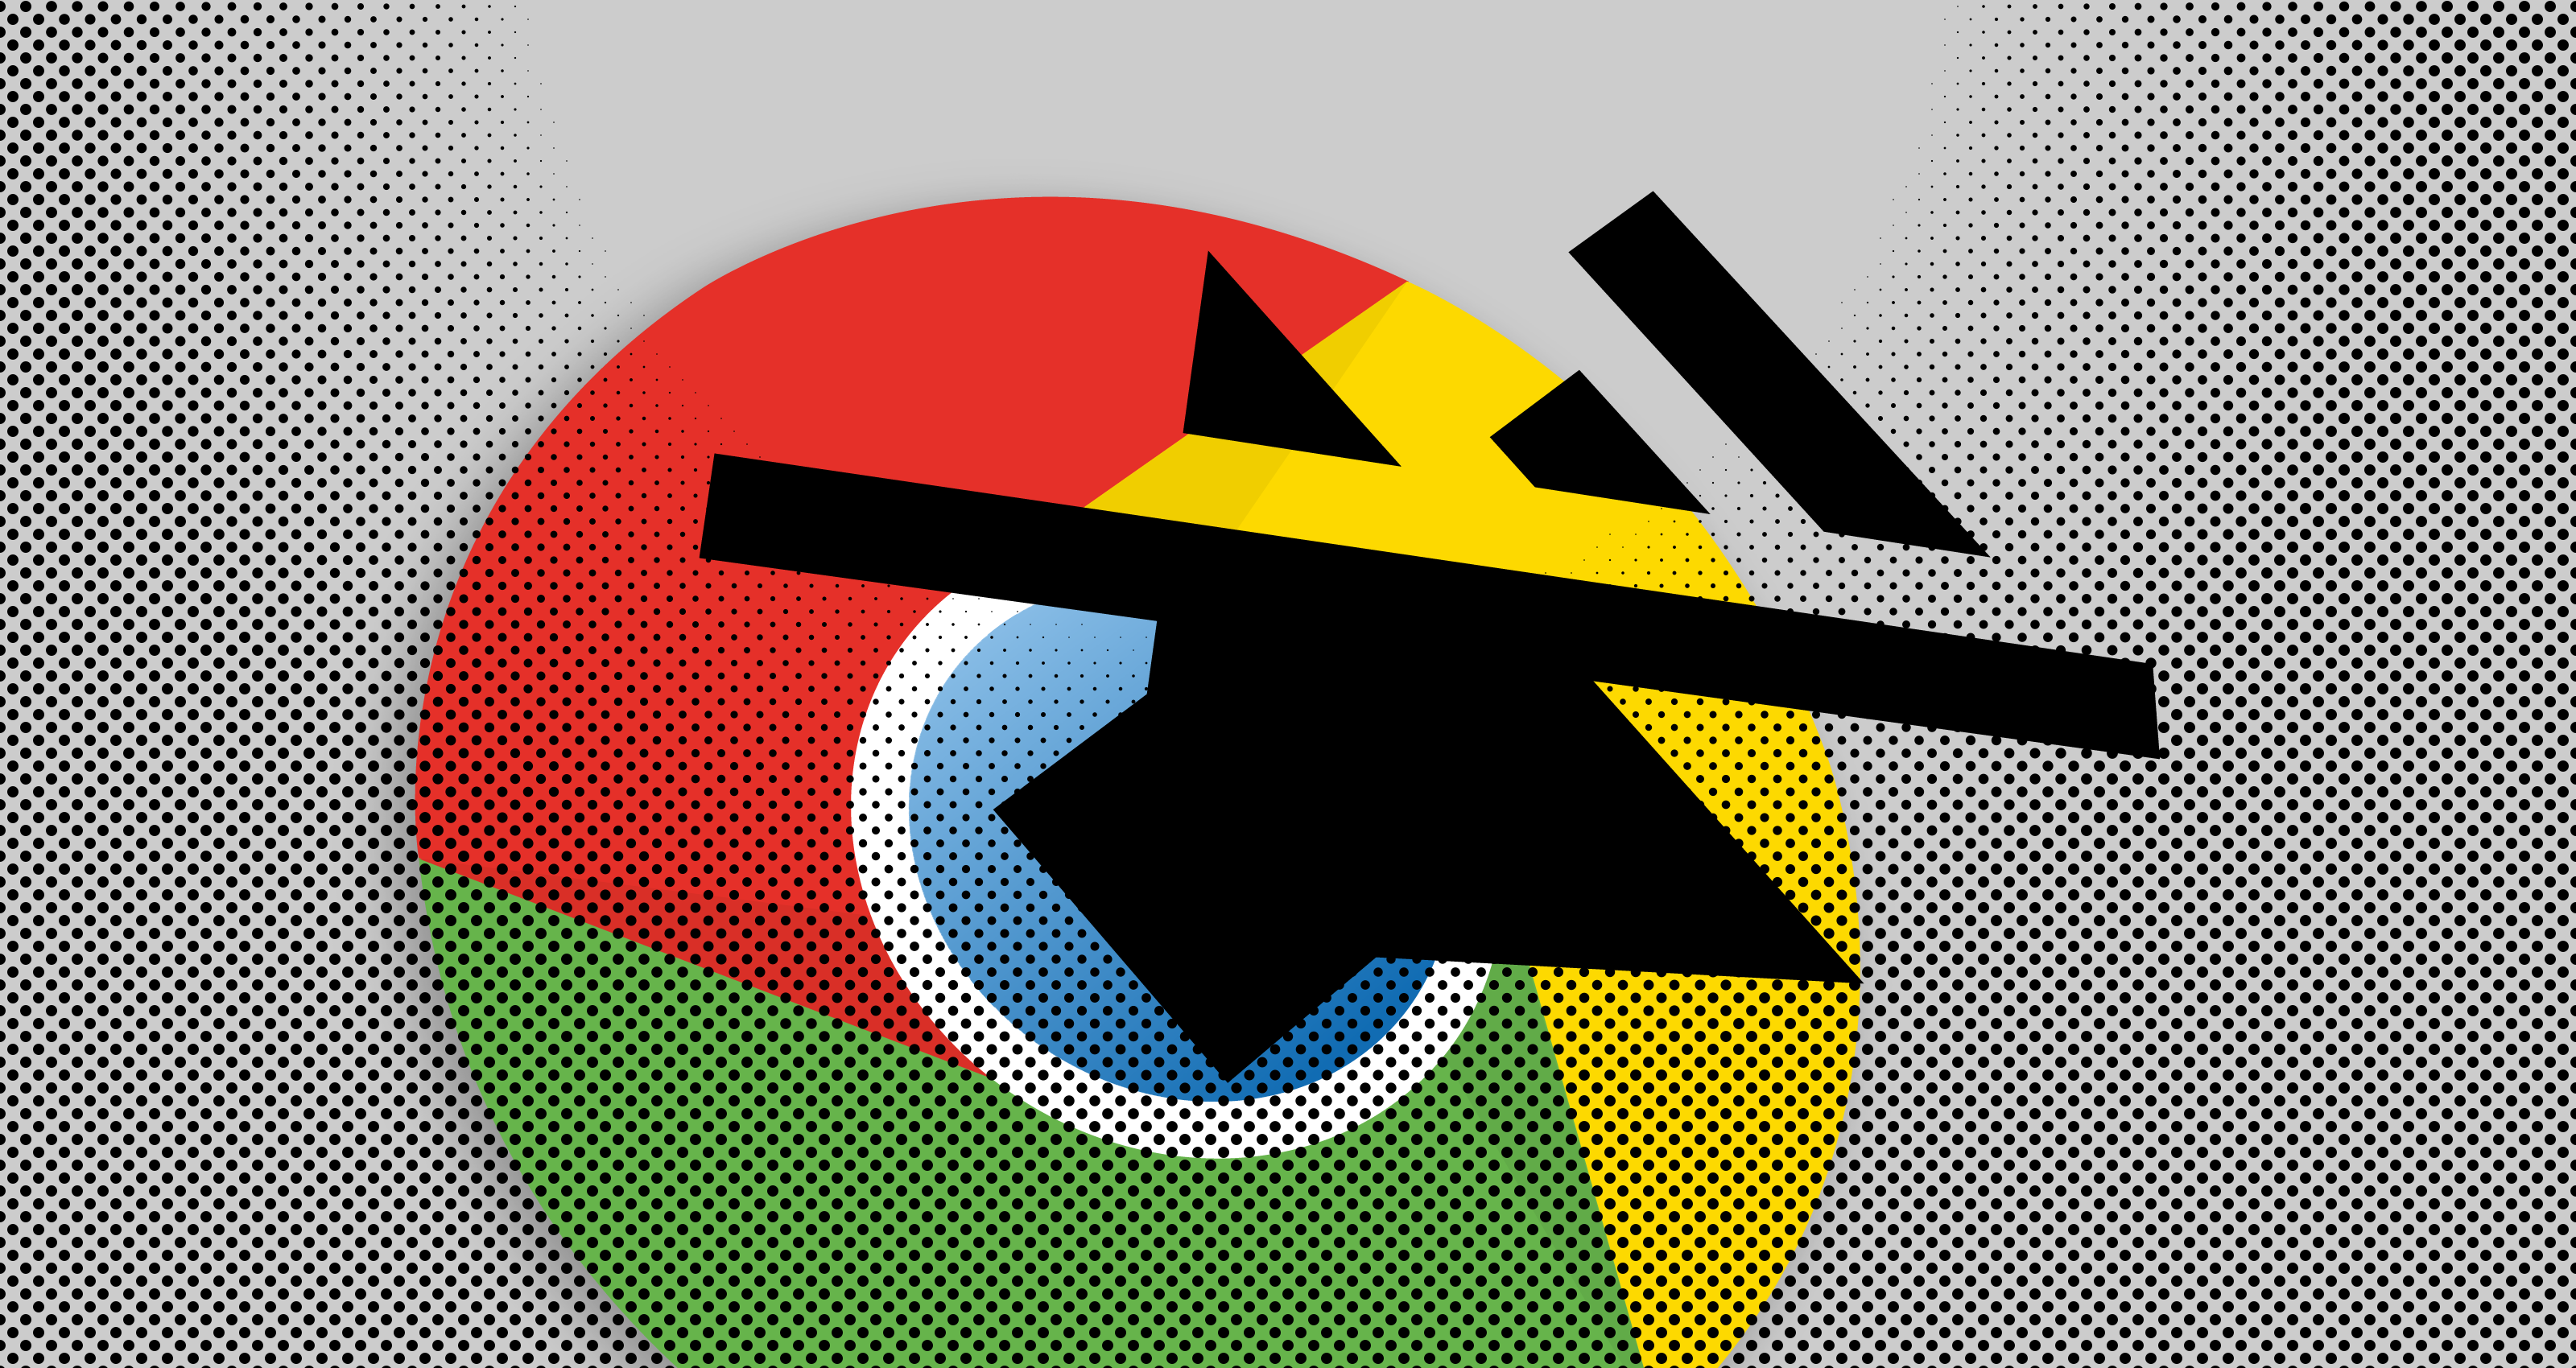 Google Chrome starts blocking annoying autoplay videos